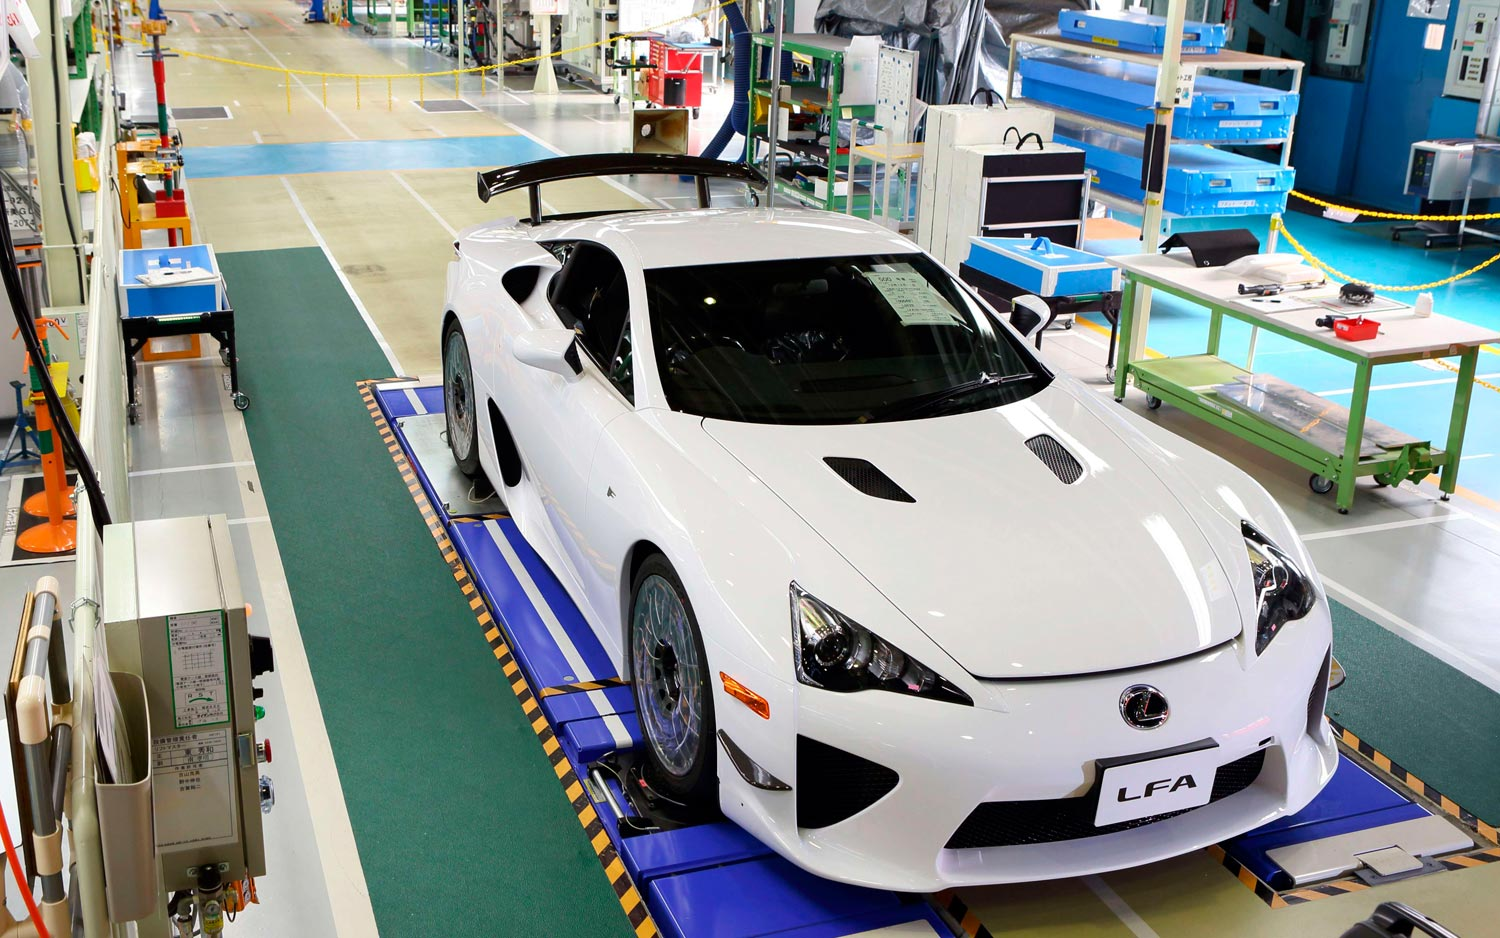 2012 Lexus LFA Last Car Off Assembly Line1